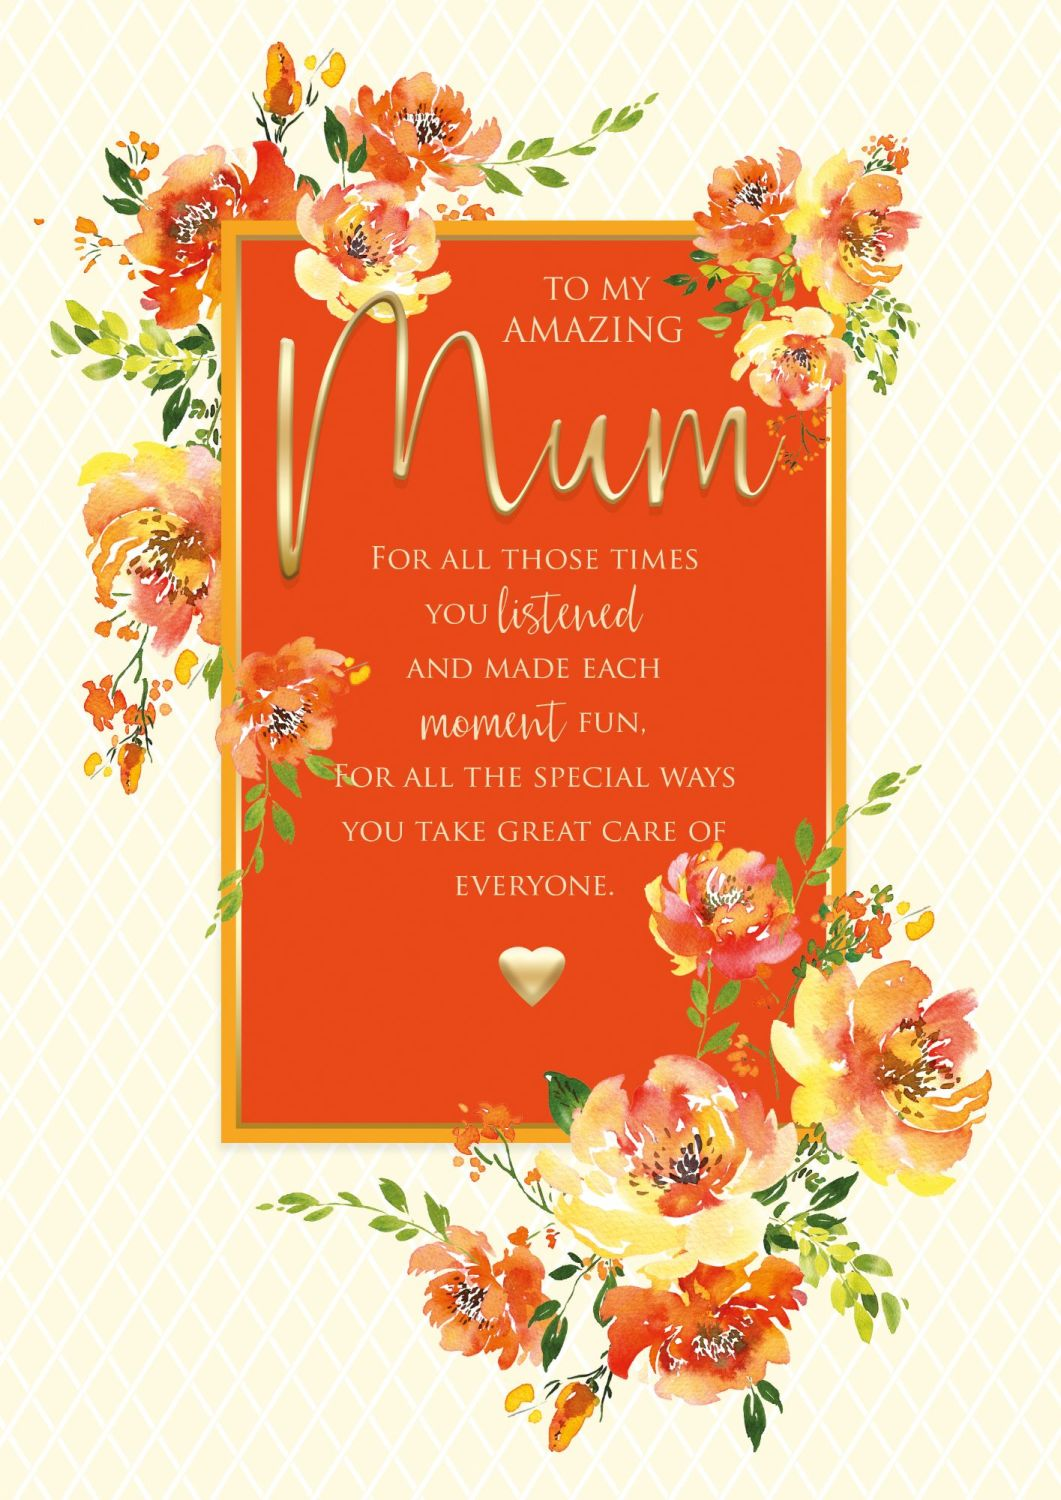 To My AMAZING Mum BIRTHDAY Card - FOR All THOSE Times - Mum Birthday Cards